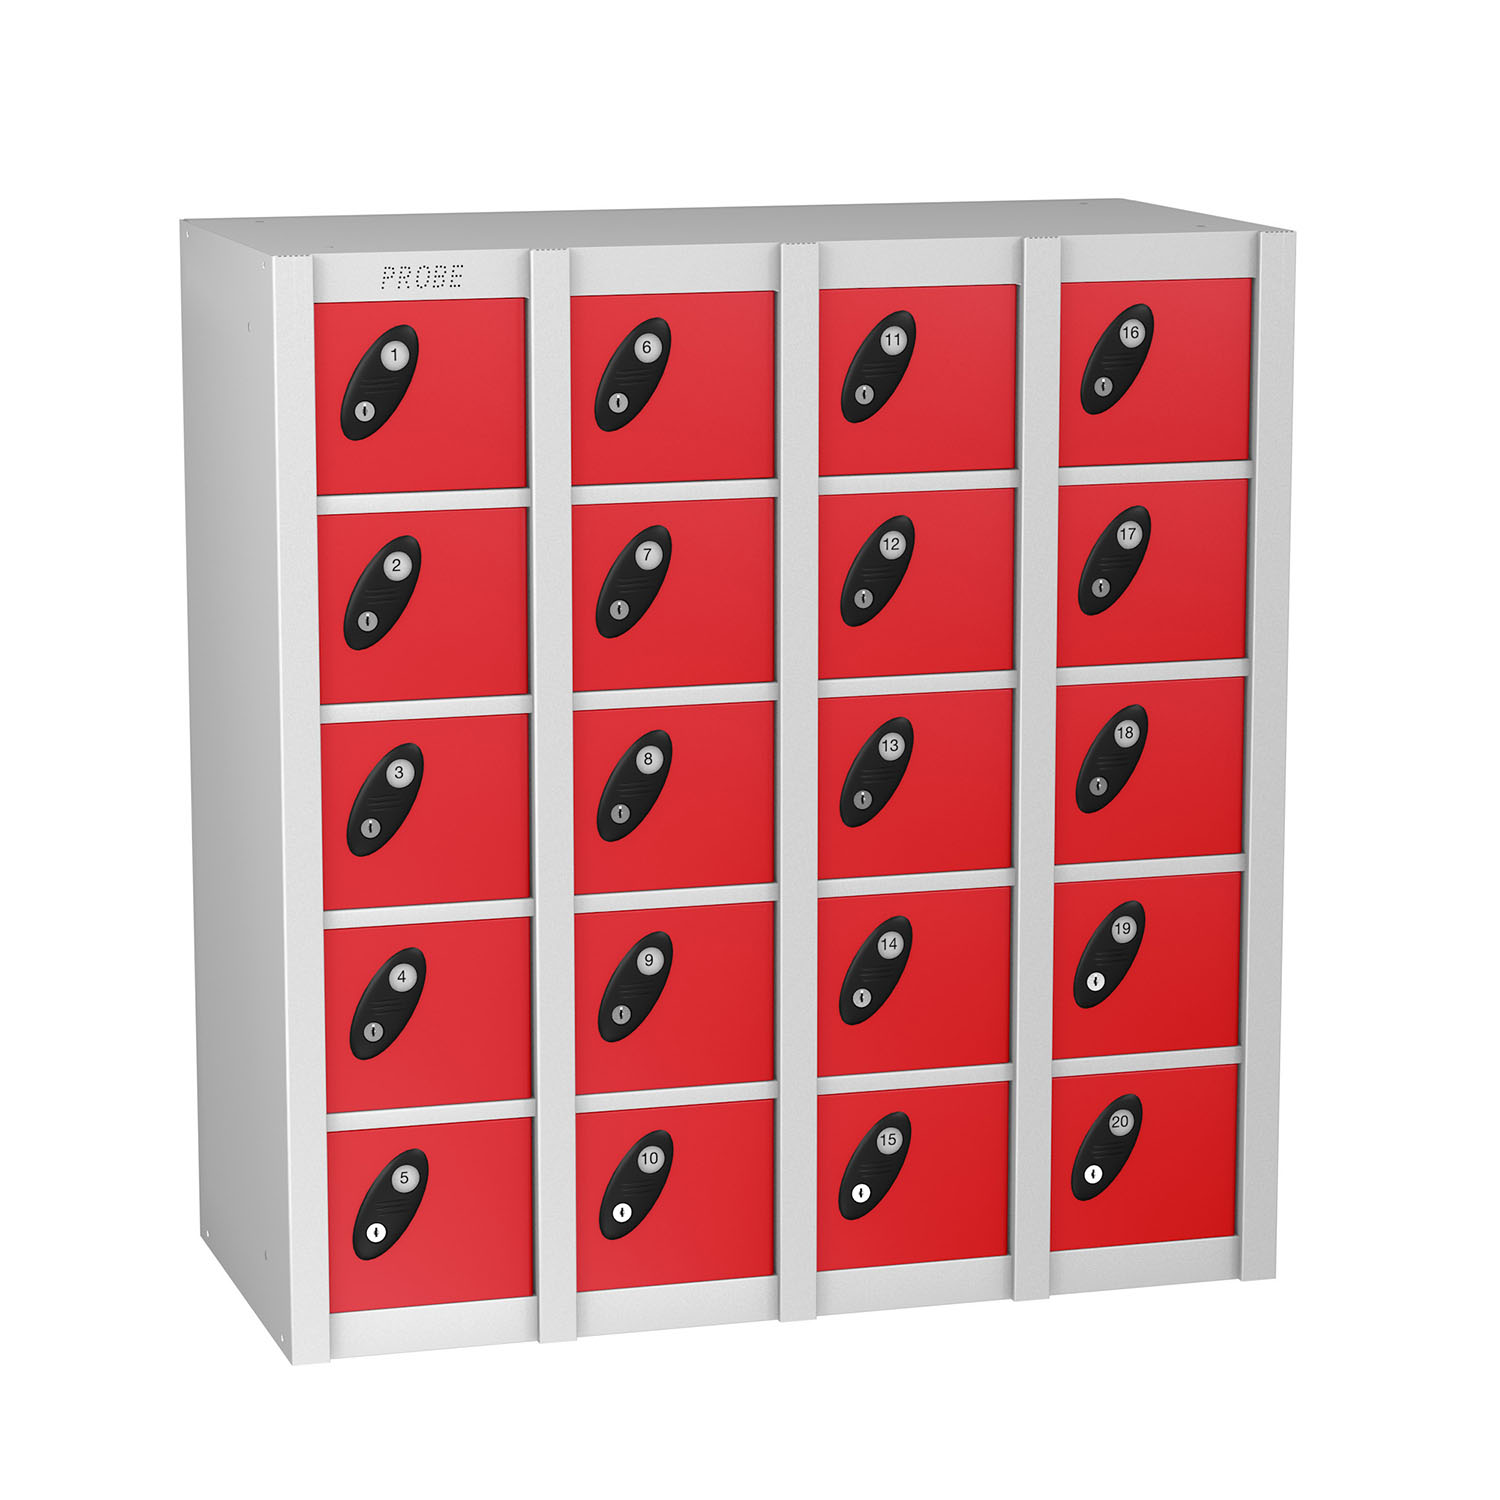 Probe 20 doors minibox lockers in red colour